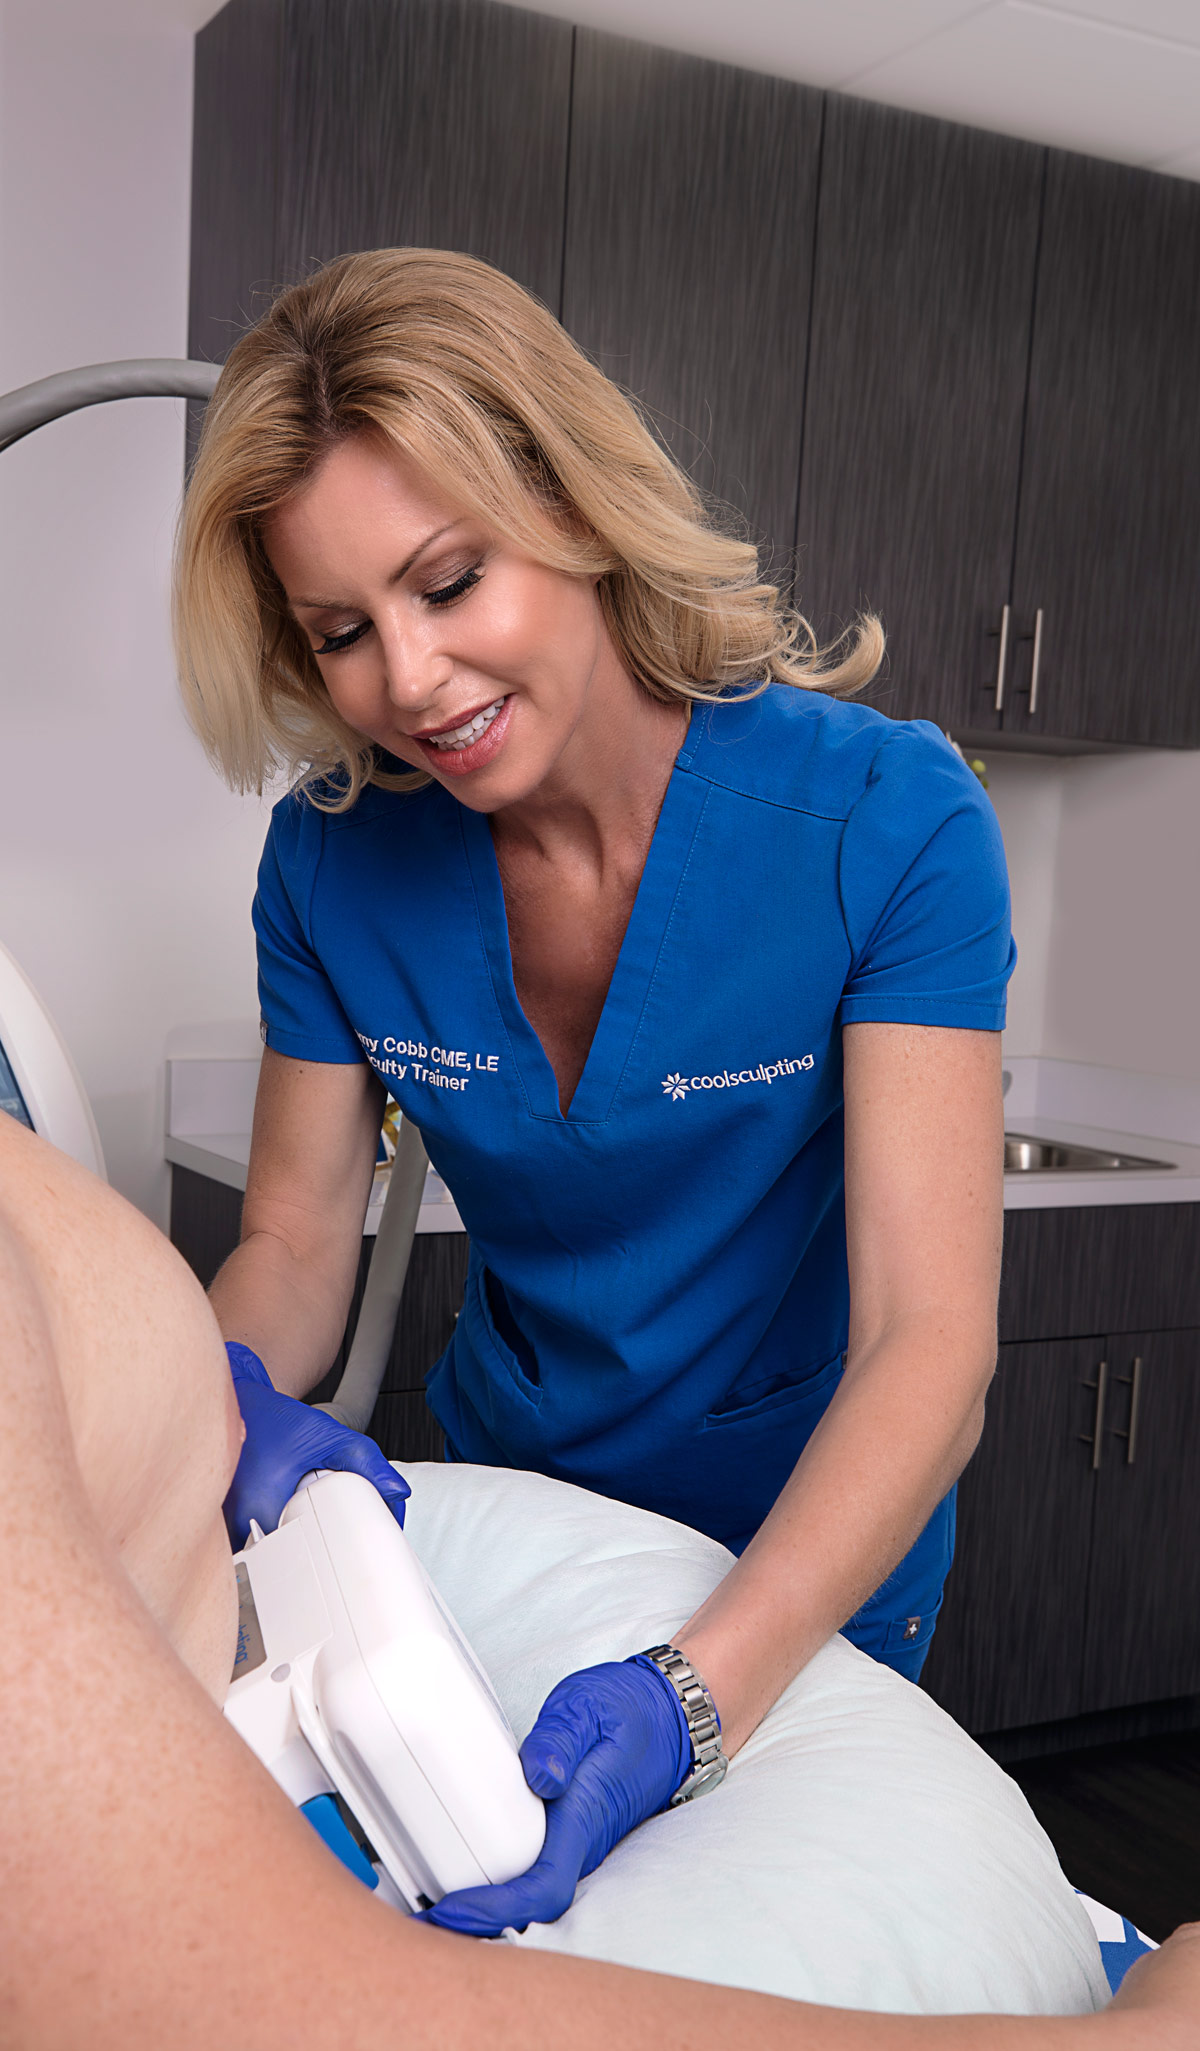 Tammy Cobb, aesthetics specialist, performing CoolSculpting to patient at Riverchase Dermatology in Miami, FL.